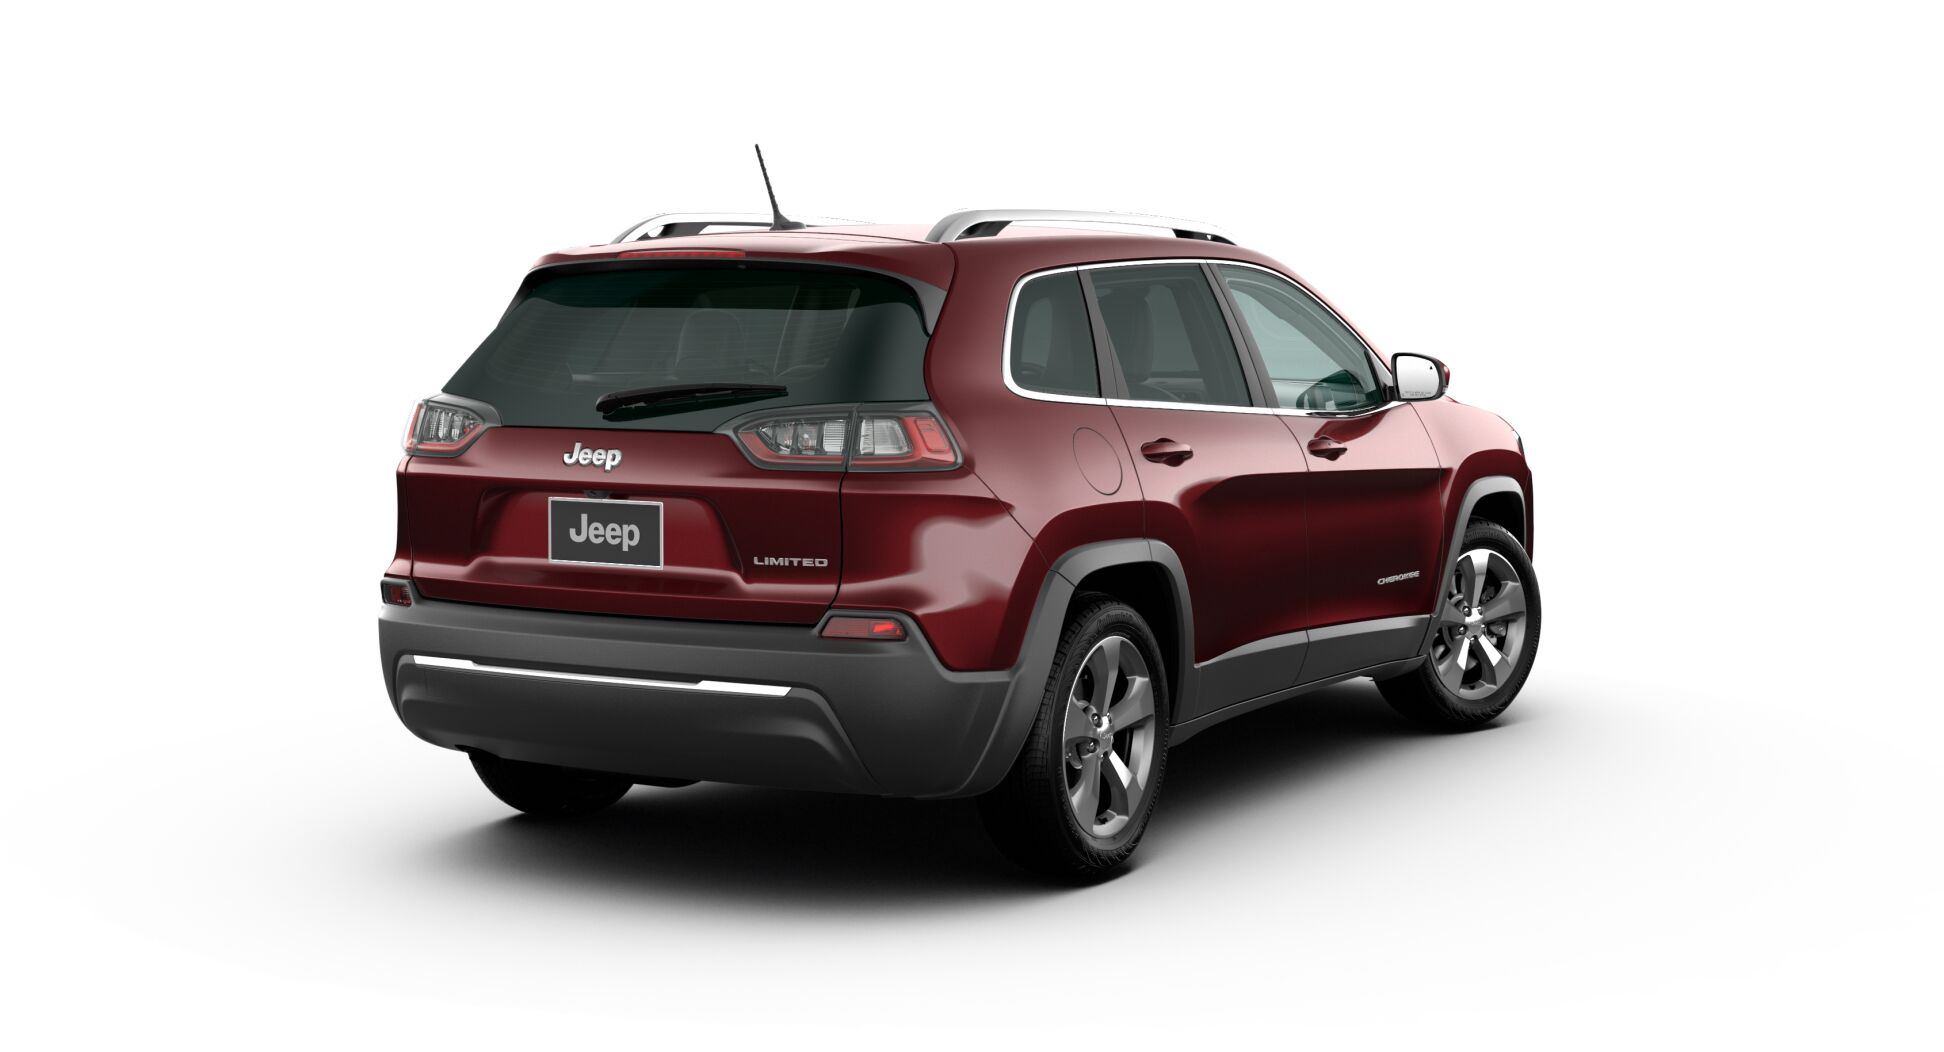 2020 Jeep Cherokee Limited Rear View Exterior Red Picture